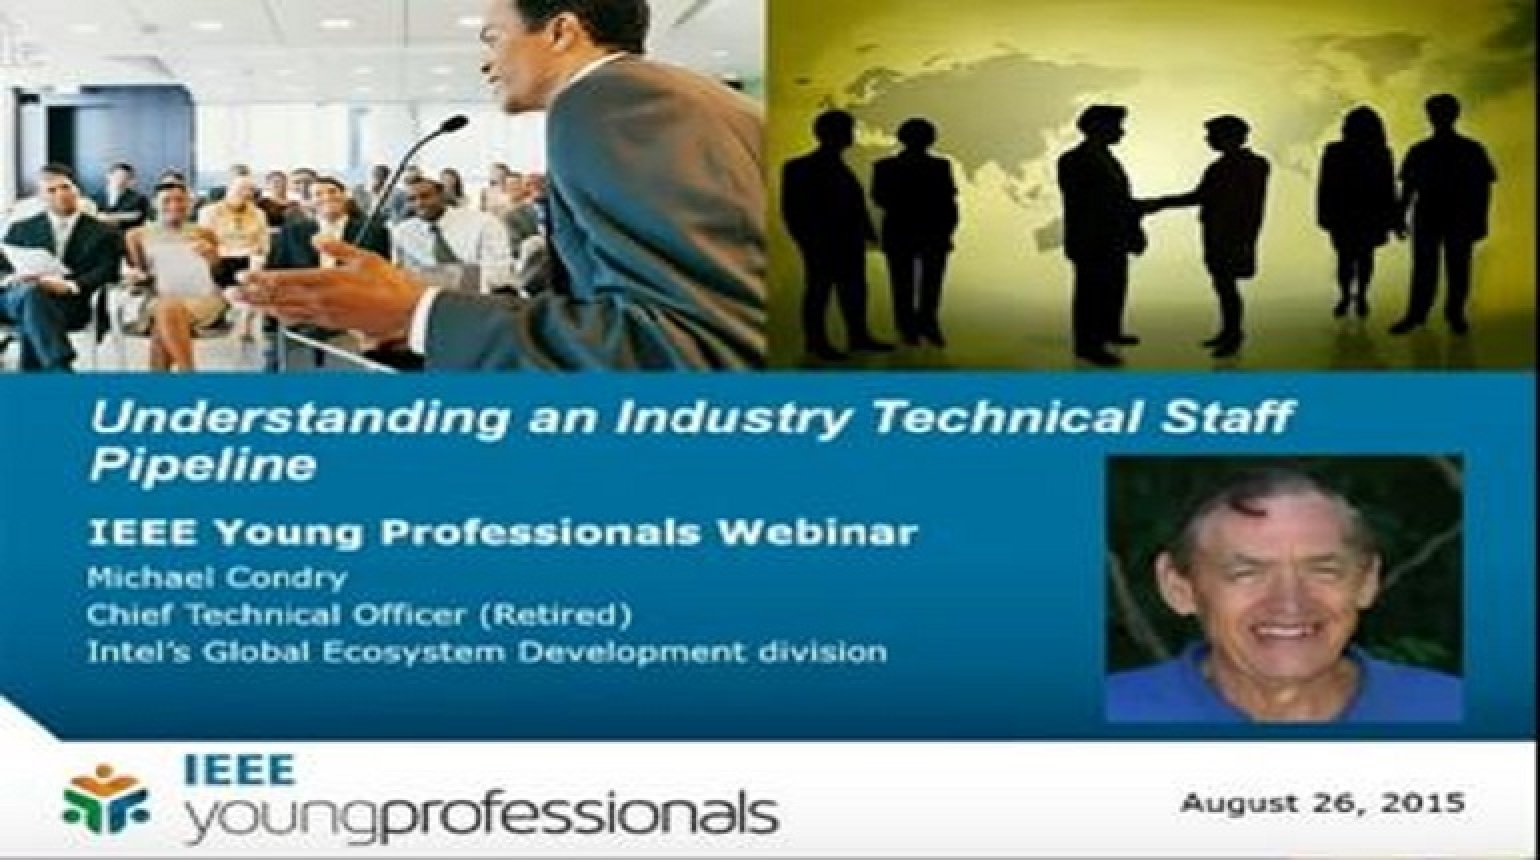 Understanding an Industry Technical Staff Pipeline Video